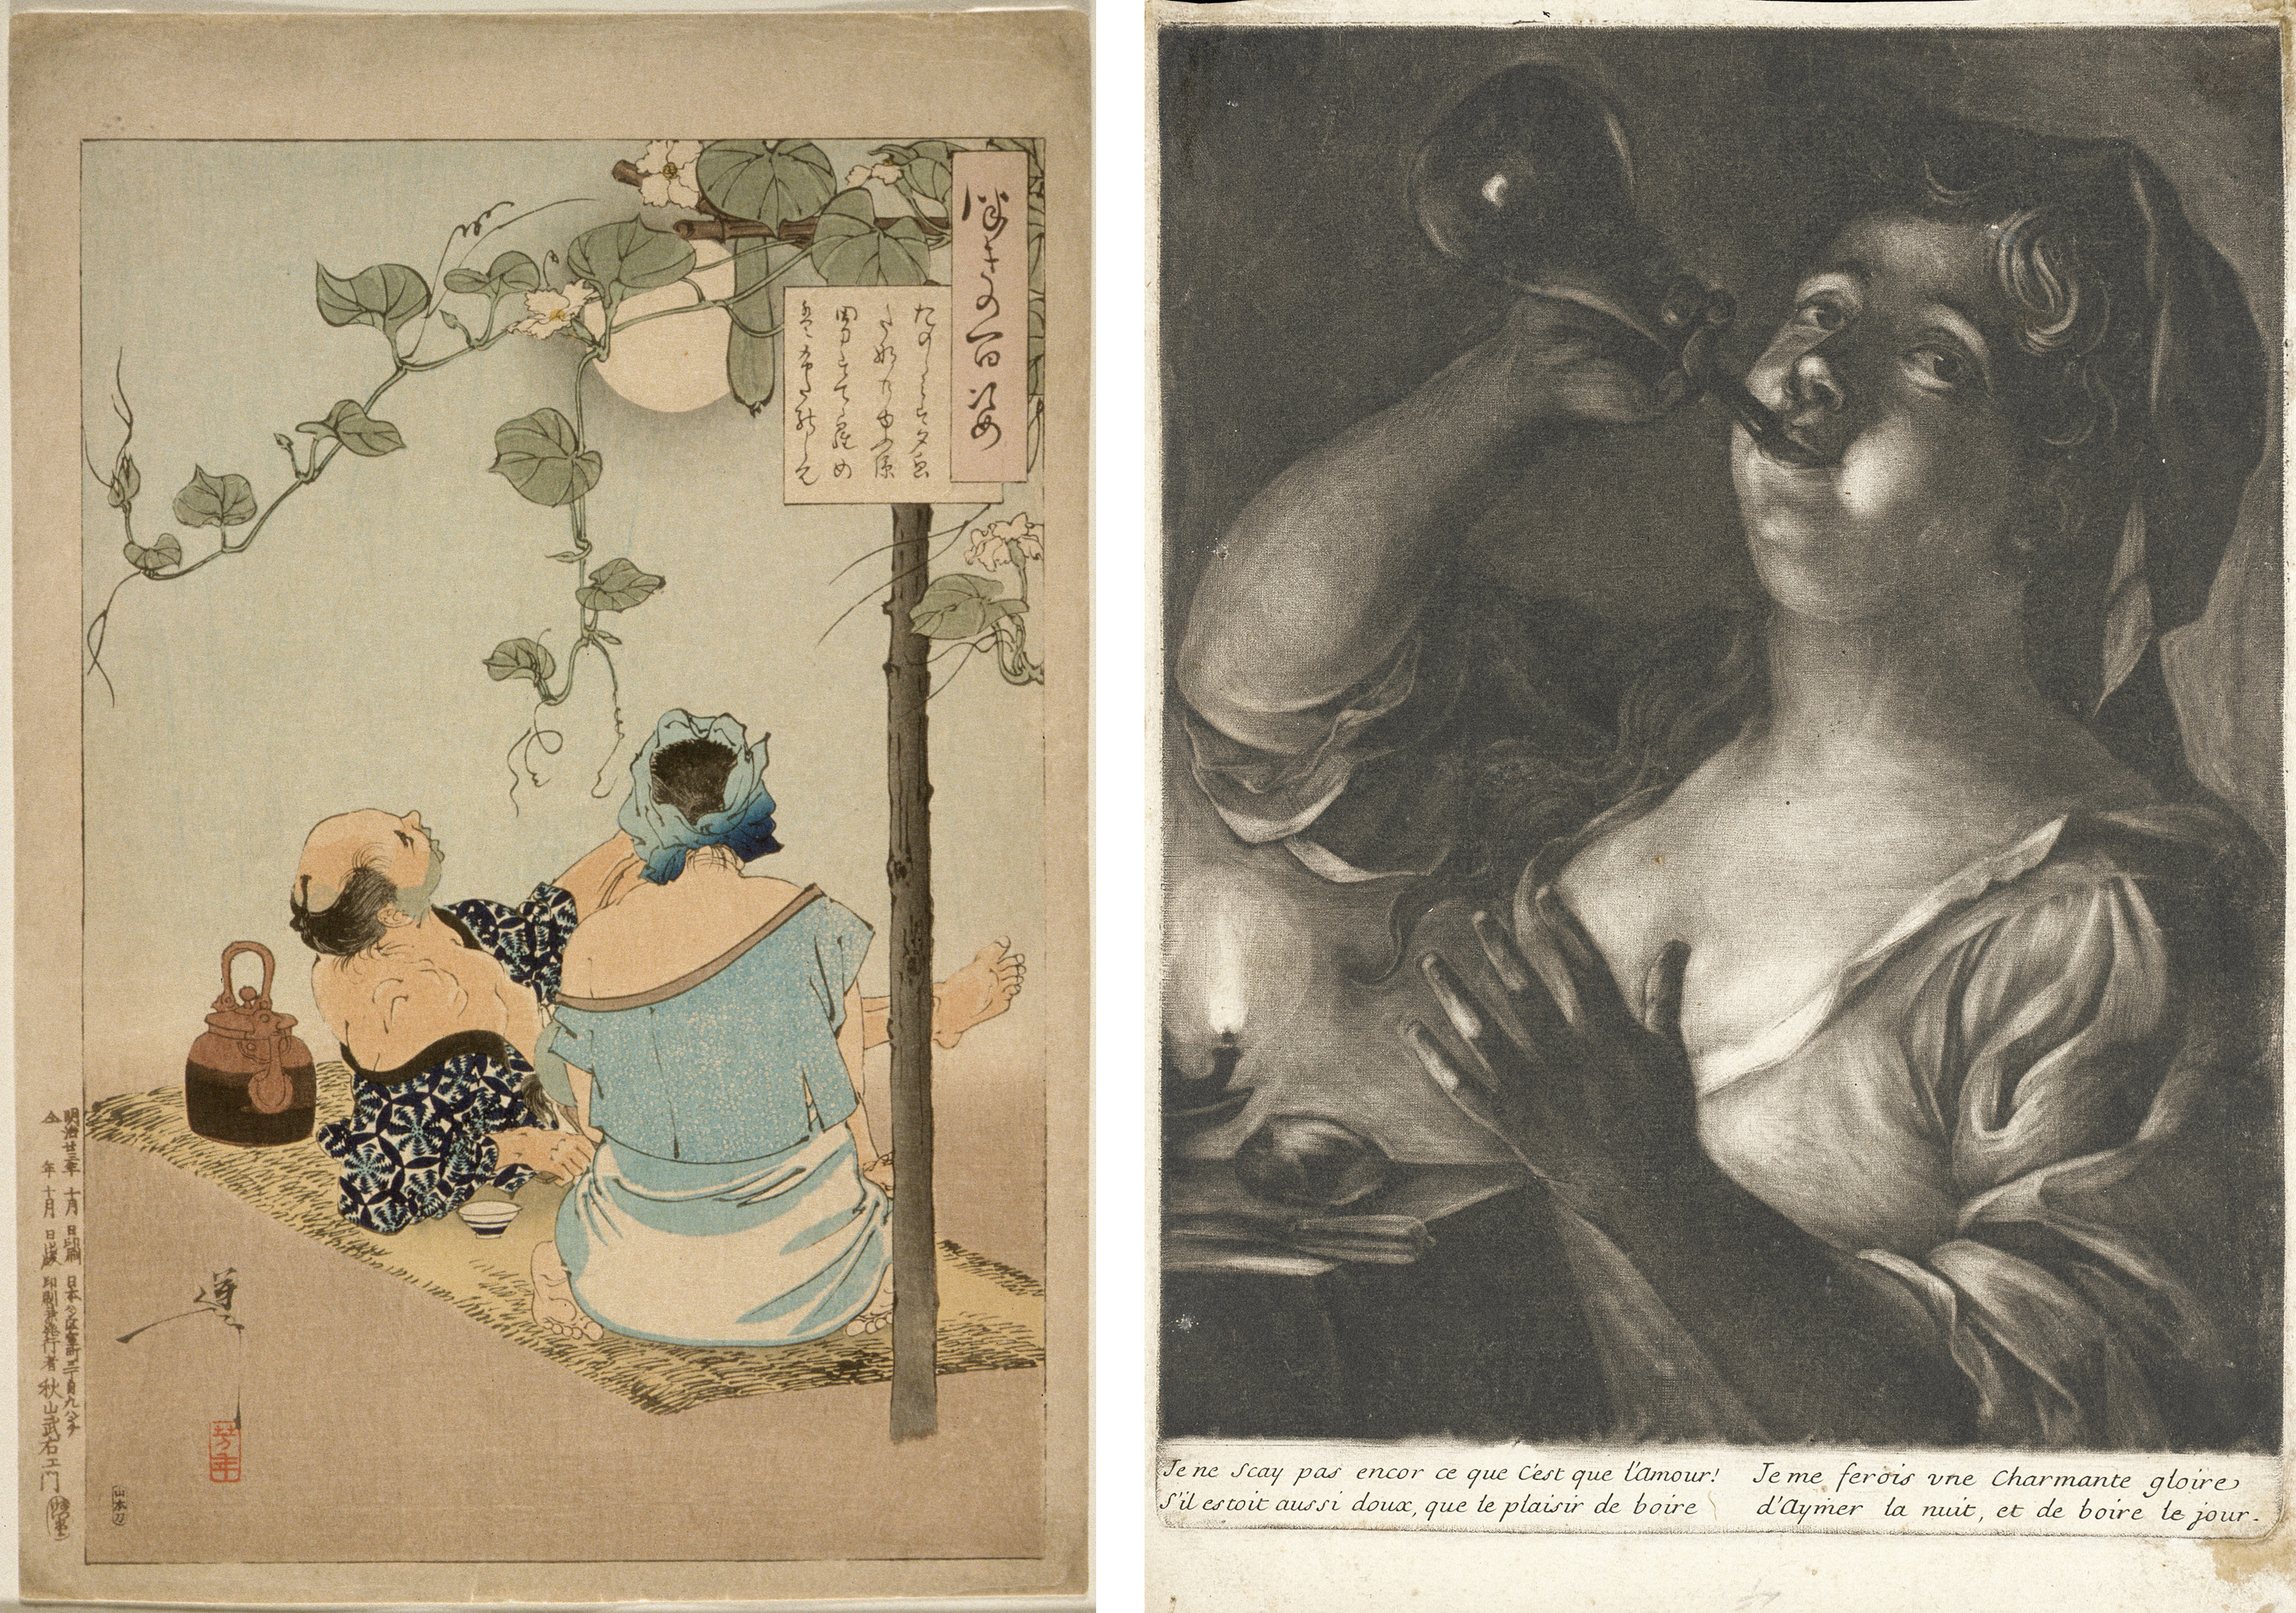 Left: Tsukioka Yoshitoshi, A Couple Enjoying the Flowering Evening Face Arbor, 1886, September, Los Angeles County Museum of Art, Herbert R. Cole Collection, photo © Museum Associates/LACMA; Right: Girl Drinking from a Flask by Candlelight, Holland, 17th century, Los Angeles County Museum of Art, Los Angeles County Fund, photo © Museum Associates/LACMA